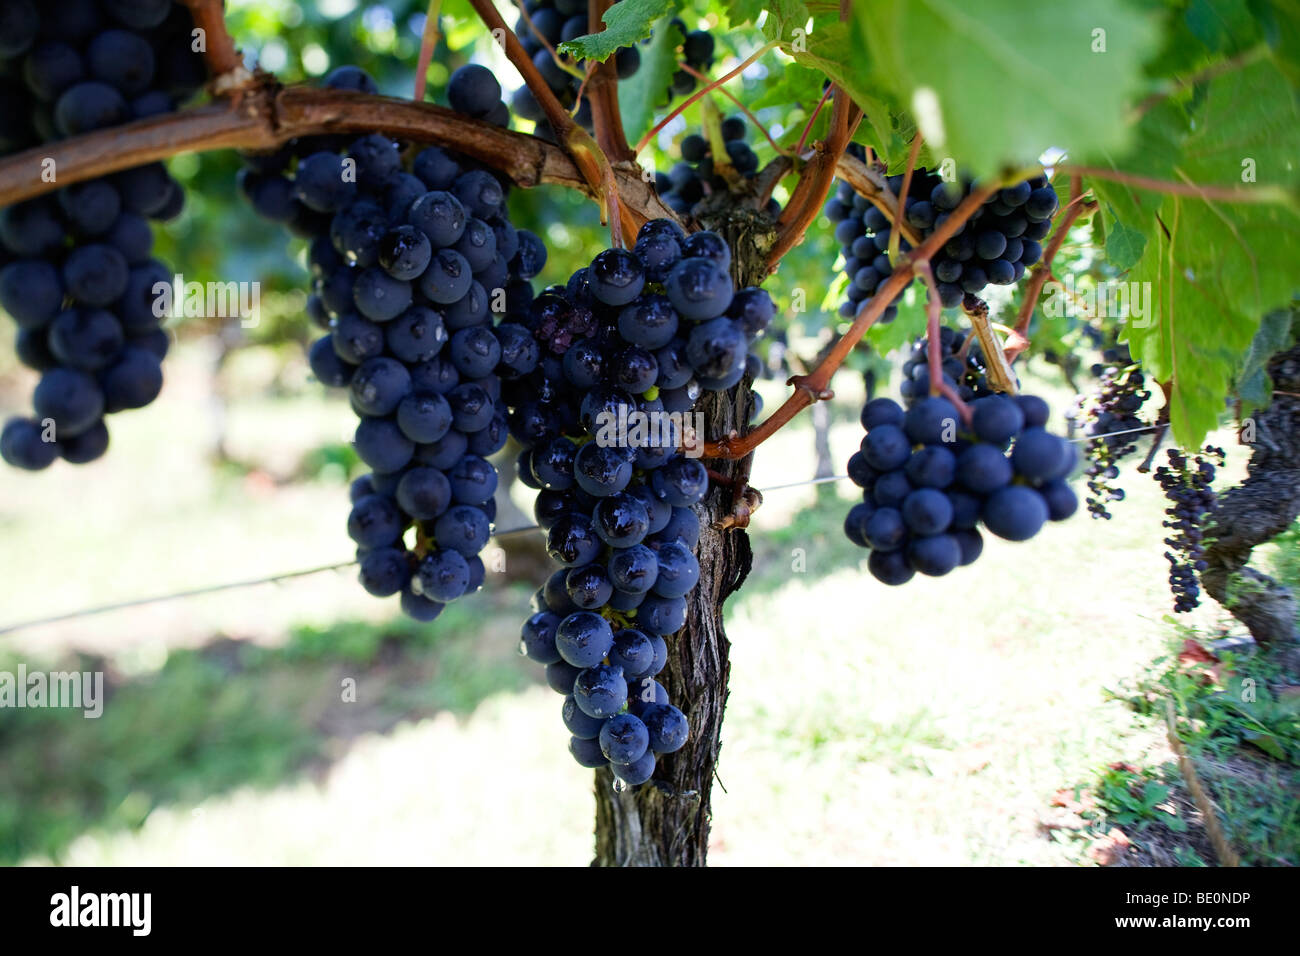 Grapes growing on vines on the outskirts of St Emilion in the wine producing region of Bordeaux in France - Stock Image